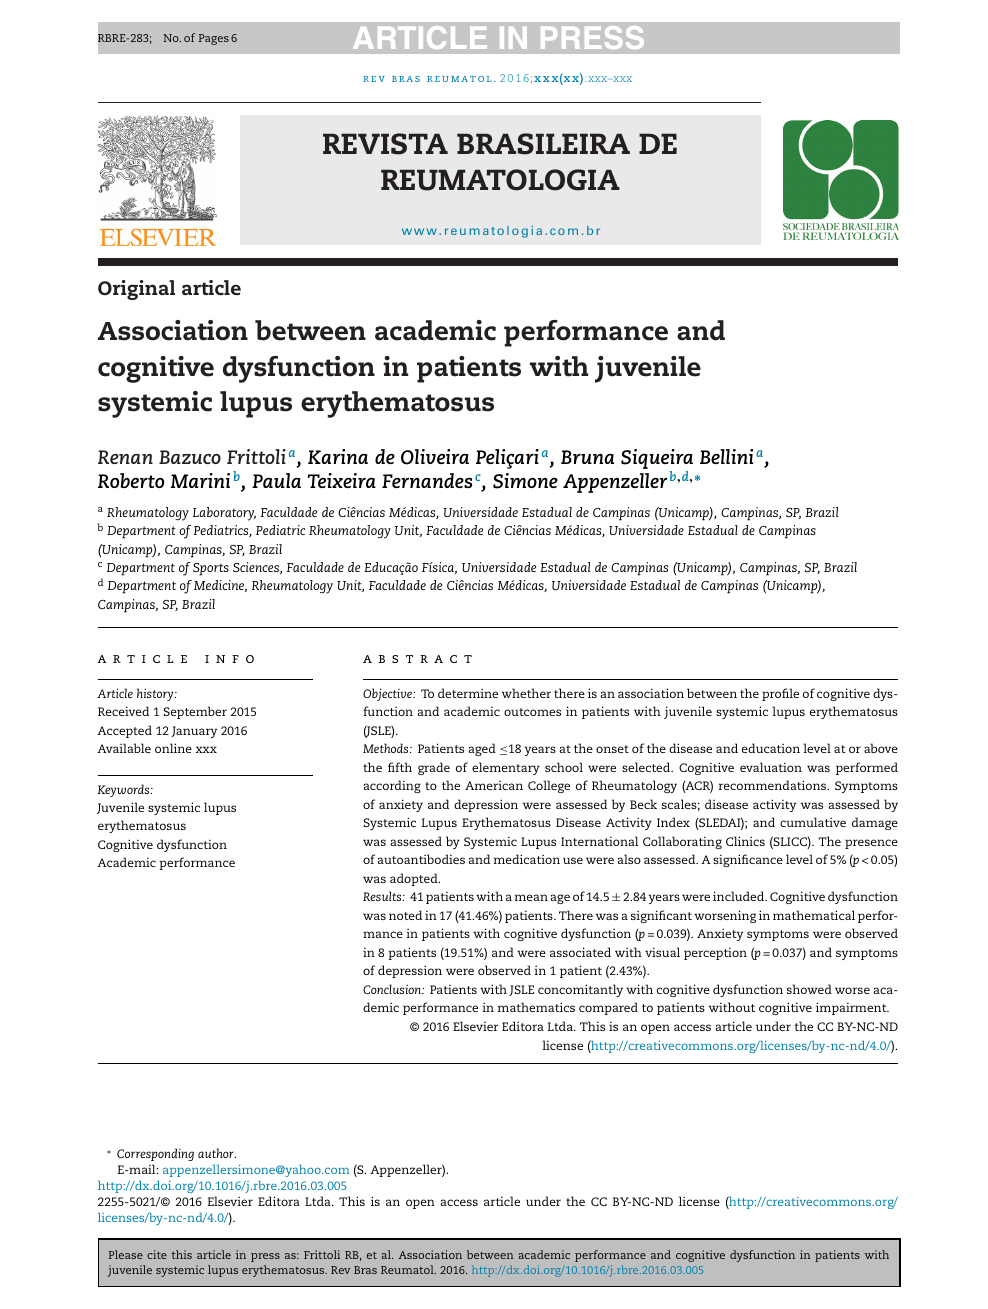 Association between academic performance and cognitive dysfunction